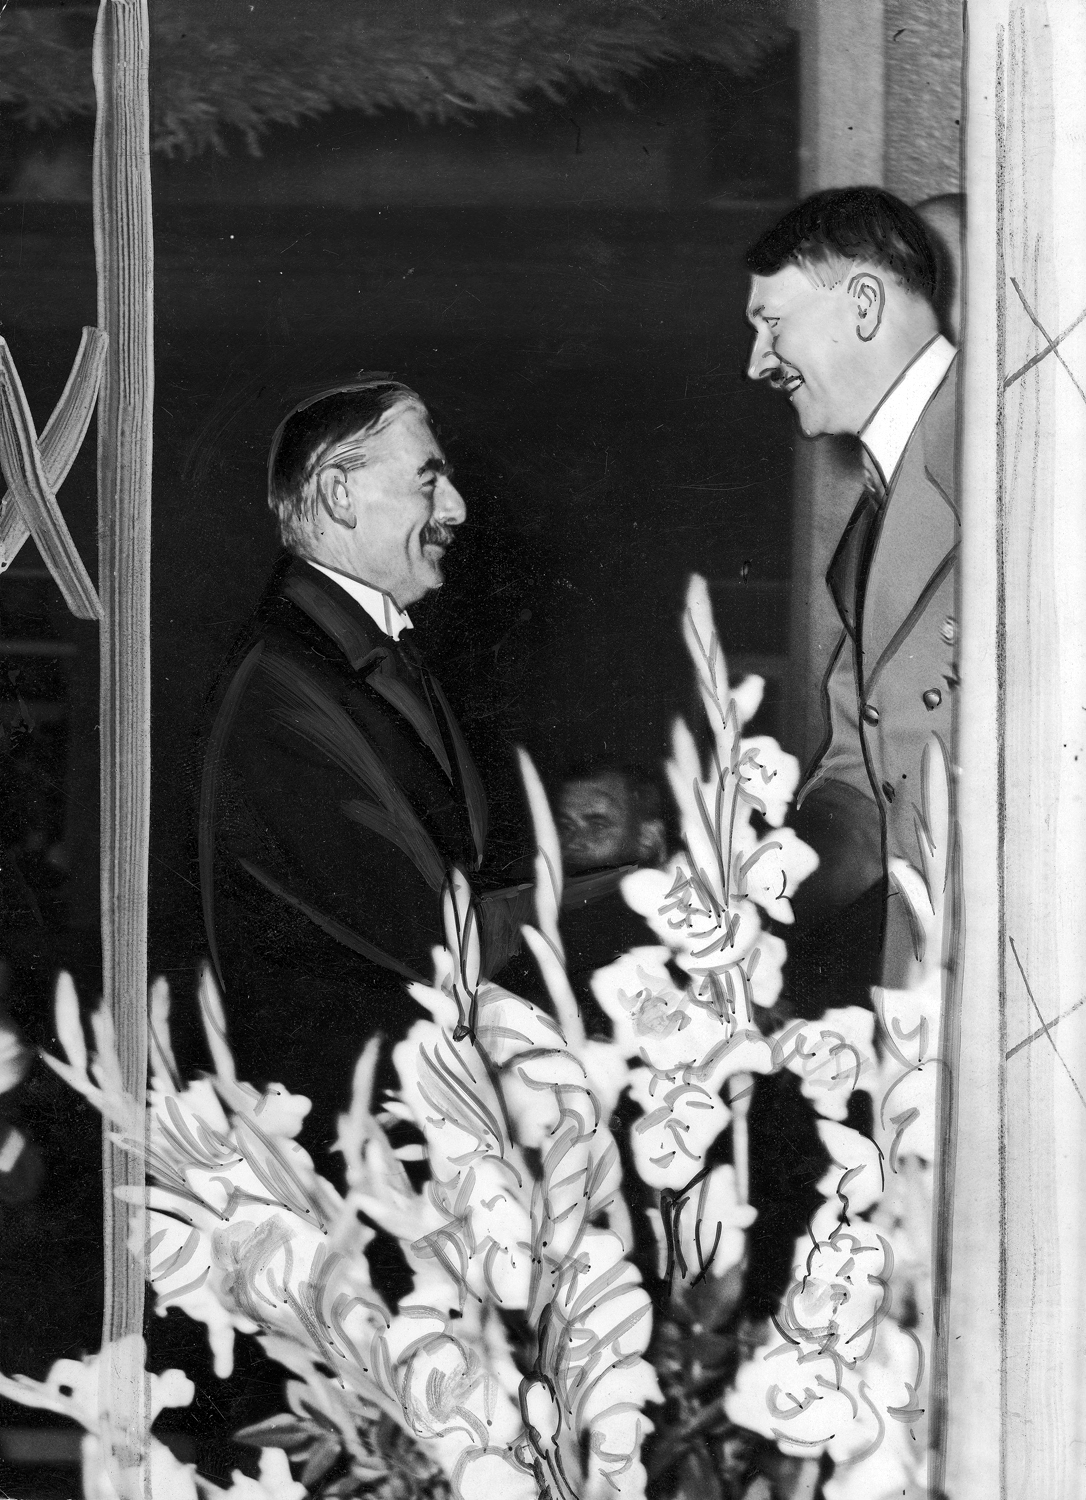 British prime minister Neville Chamberlain and Adolf Hitler shake hands during Chamberlain's visit to Germany